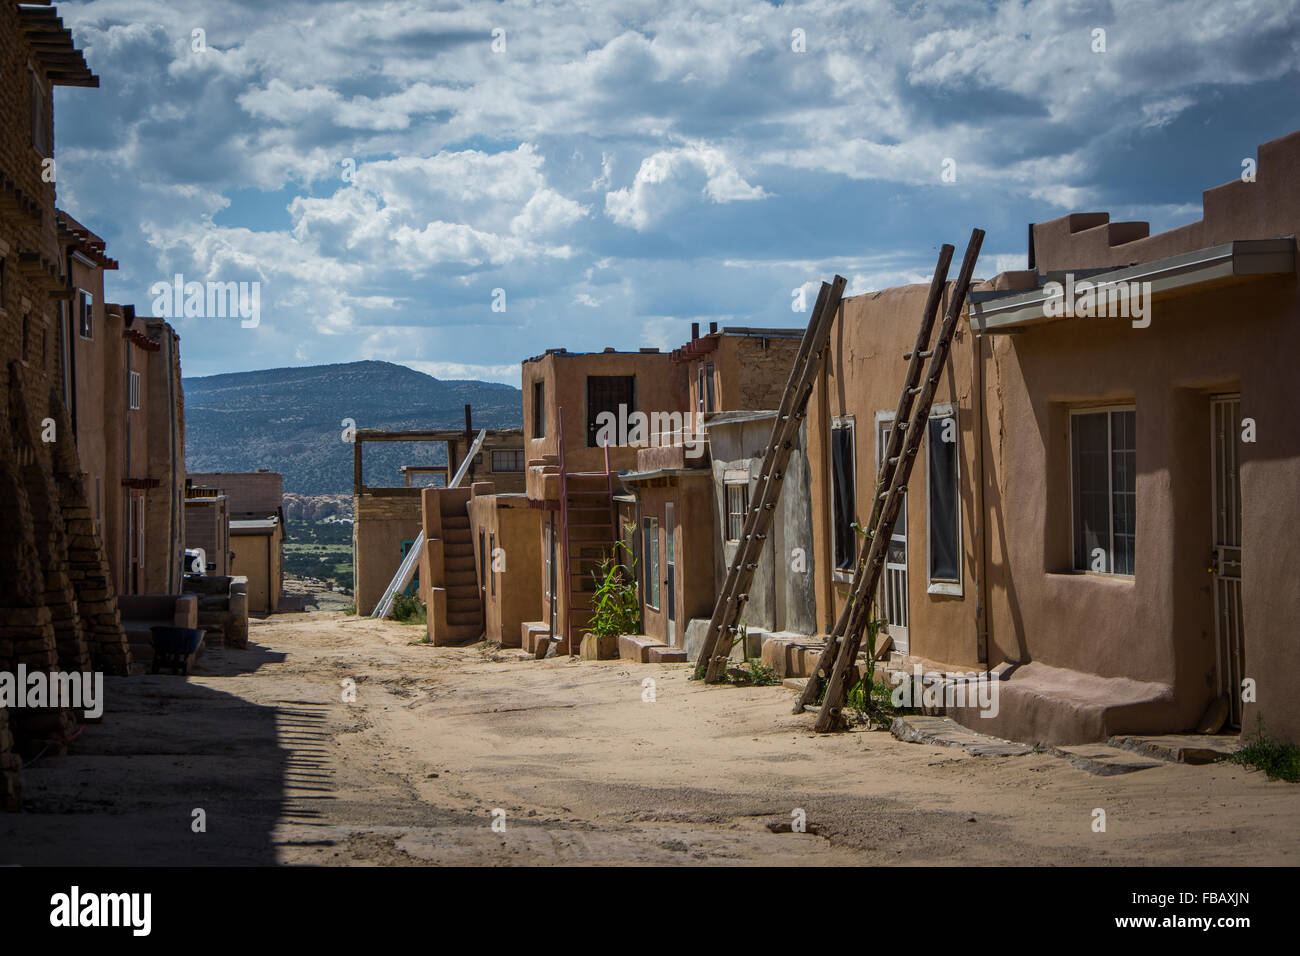 Adobe houses sky city acoma pueblo new mexico stock photo royalty free image 93053485 alamy - Pueblo adobe houses property ...